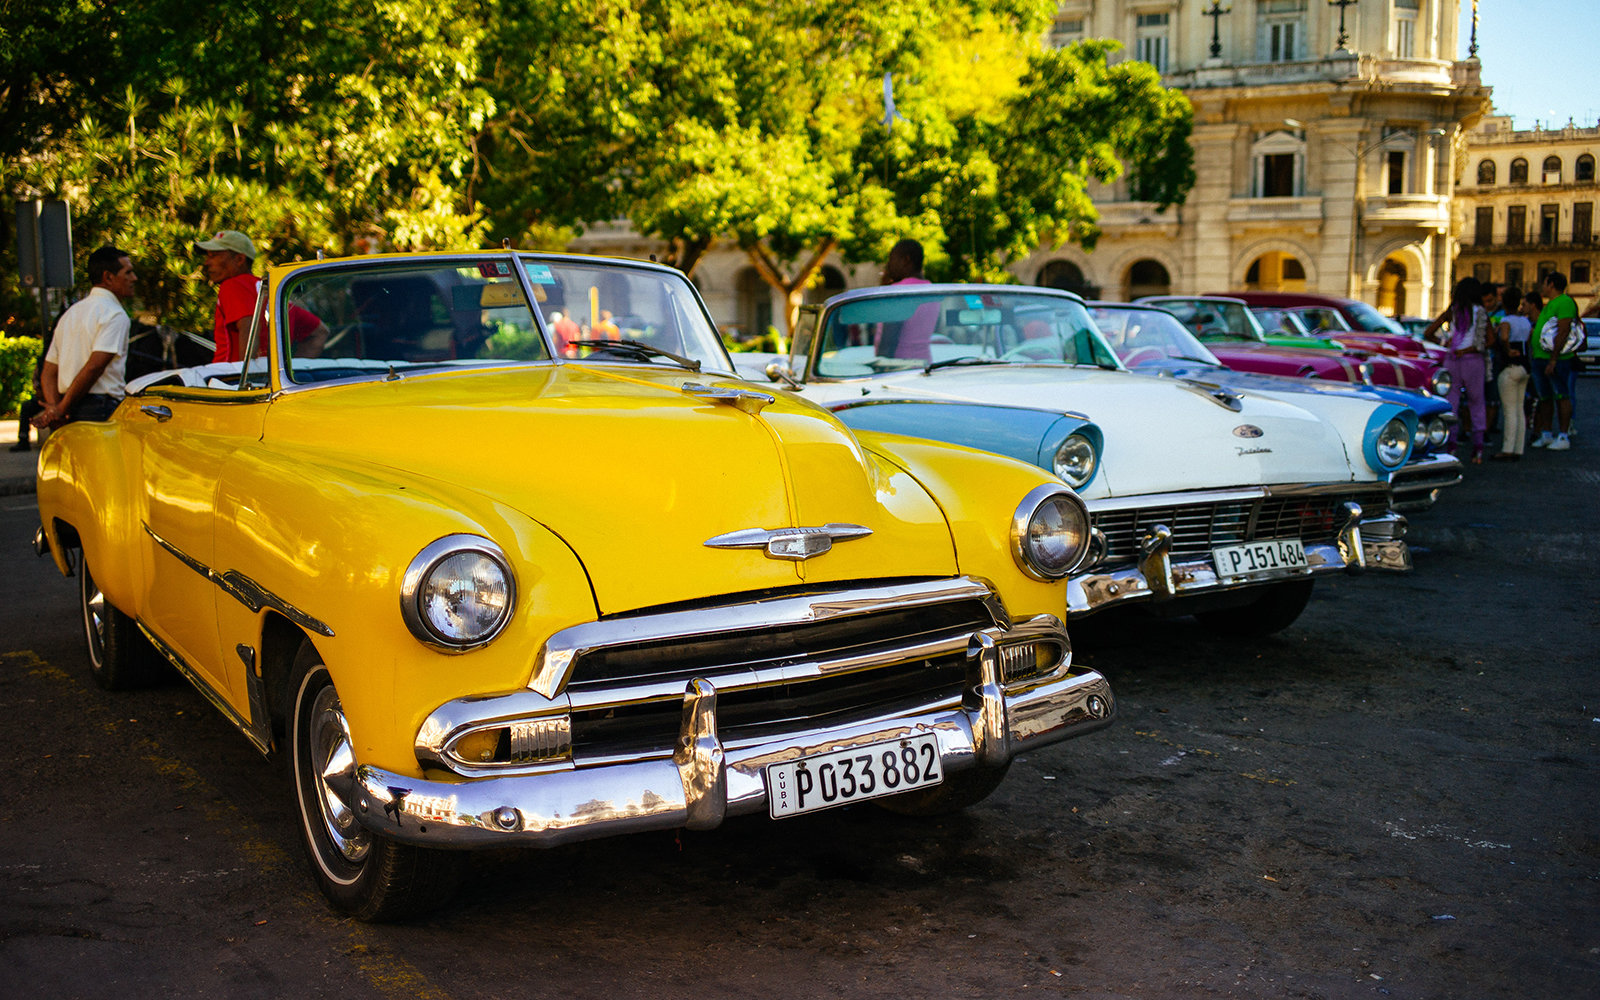 cars cuba classic antique photographs havana fall display getty impala 1961 heavy awesome cuban reasons travel reception airport apr 2005